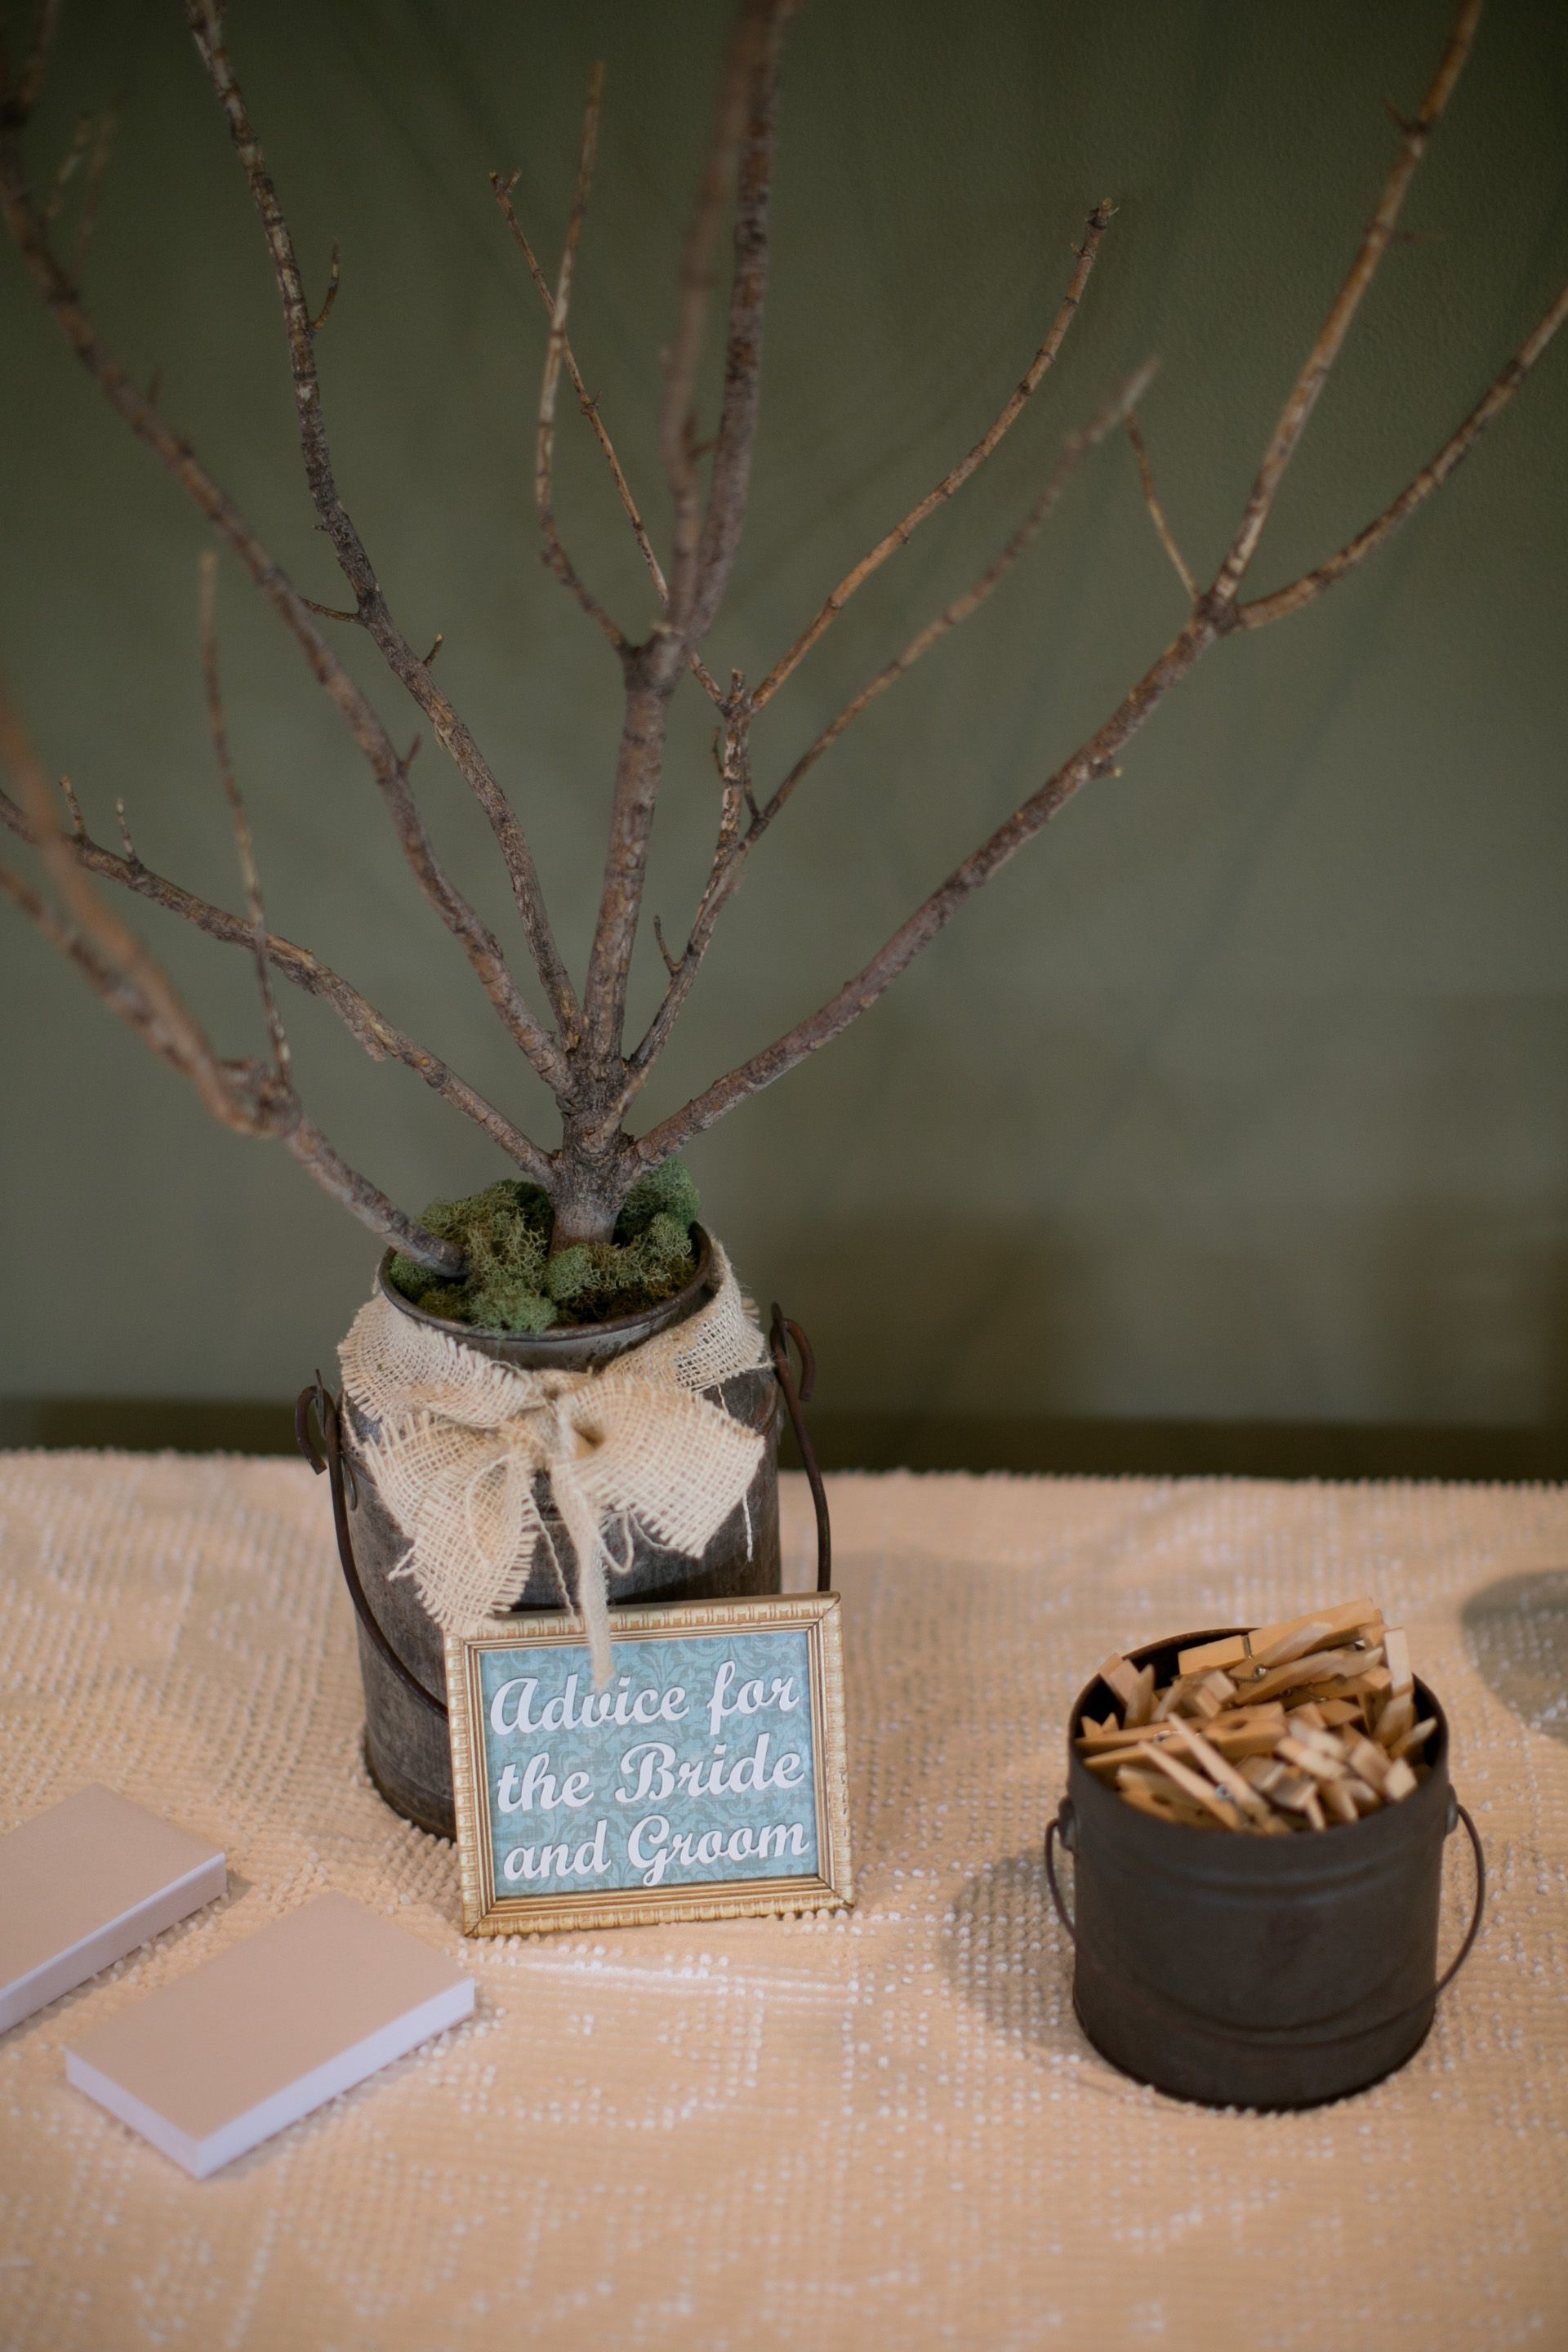 Dollar and Advice tree for vintage wedding